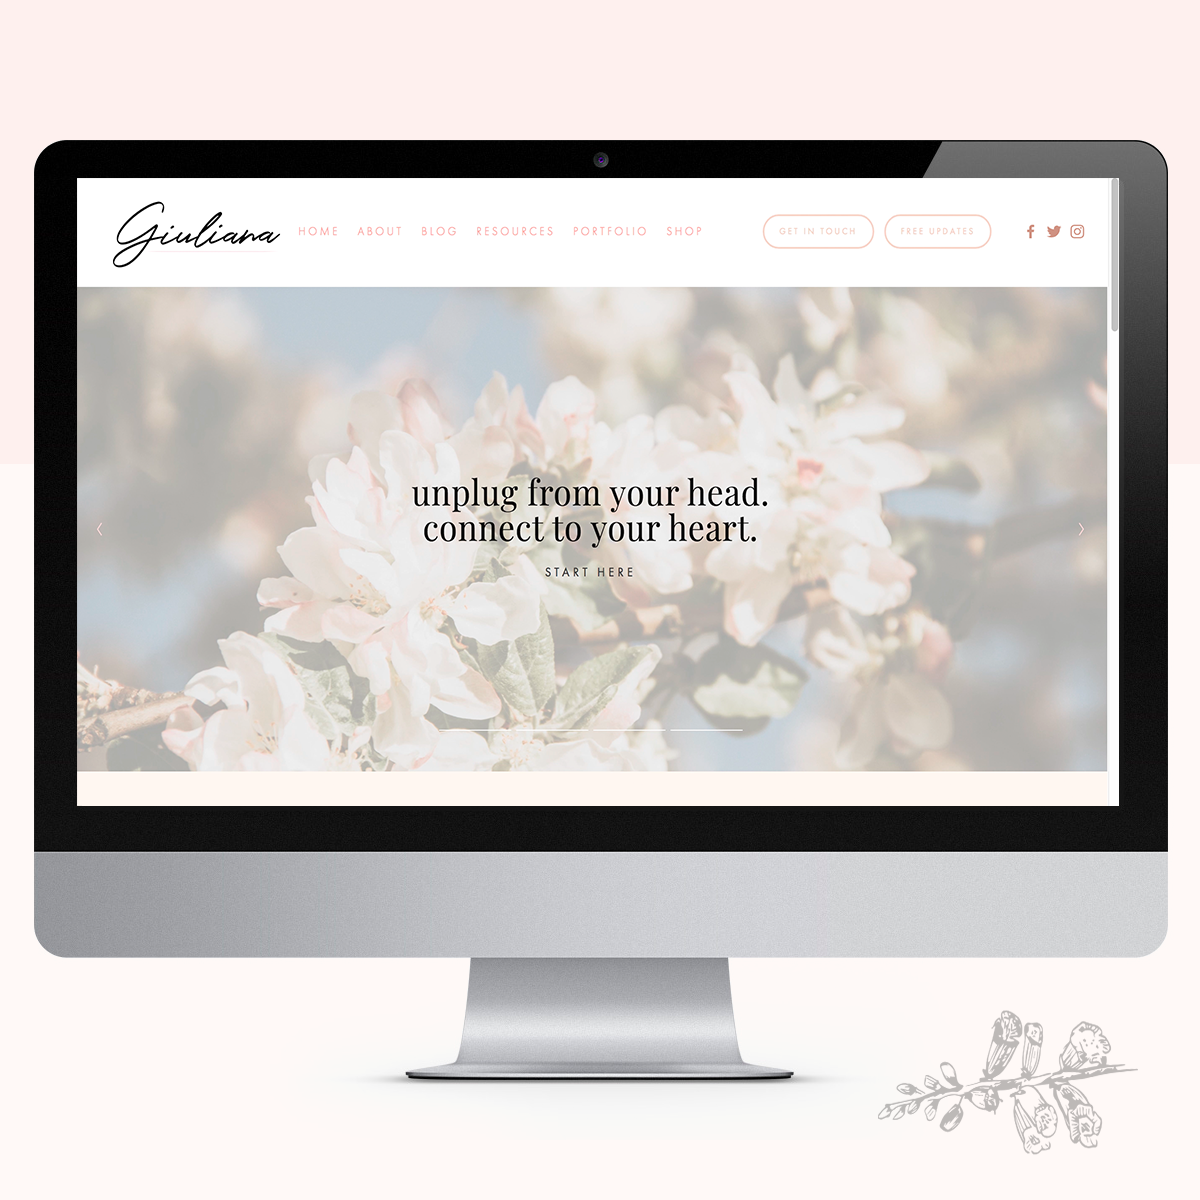 giuliana-cortese-squarespace-website-designer.png